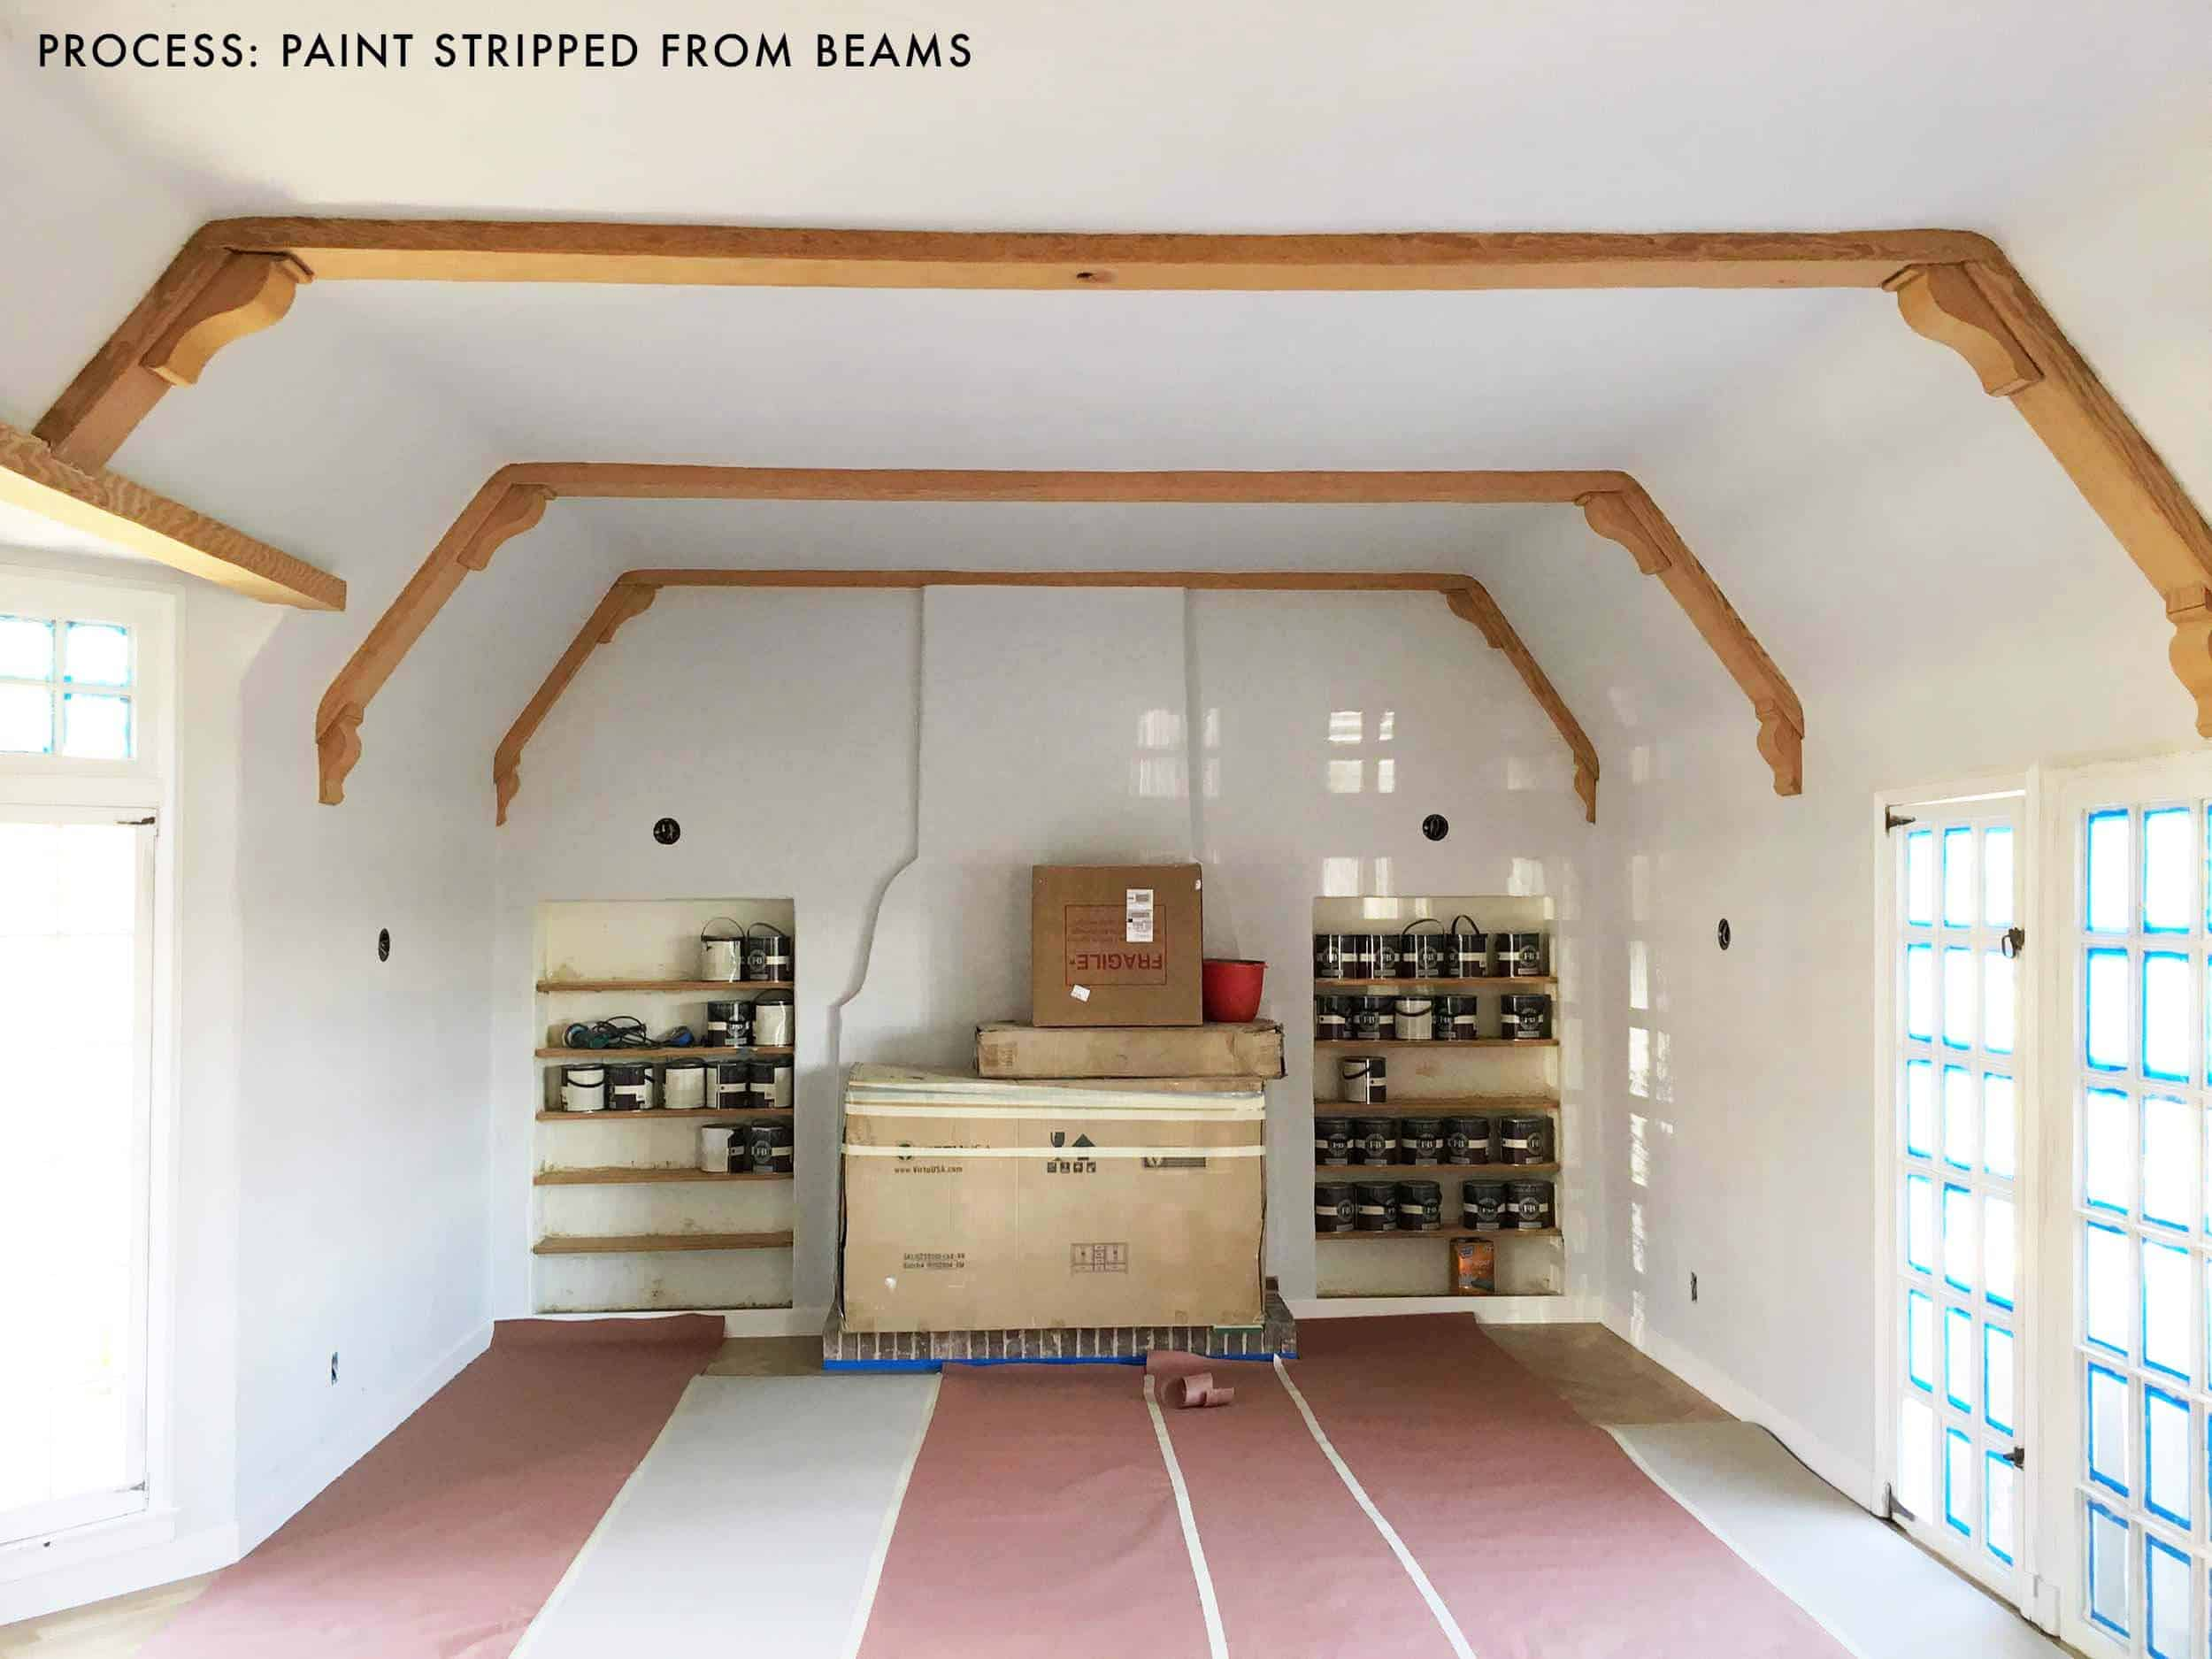 emily-henderson_living-room_wood-naturally_refinishing-beams_process_beams-stripped